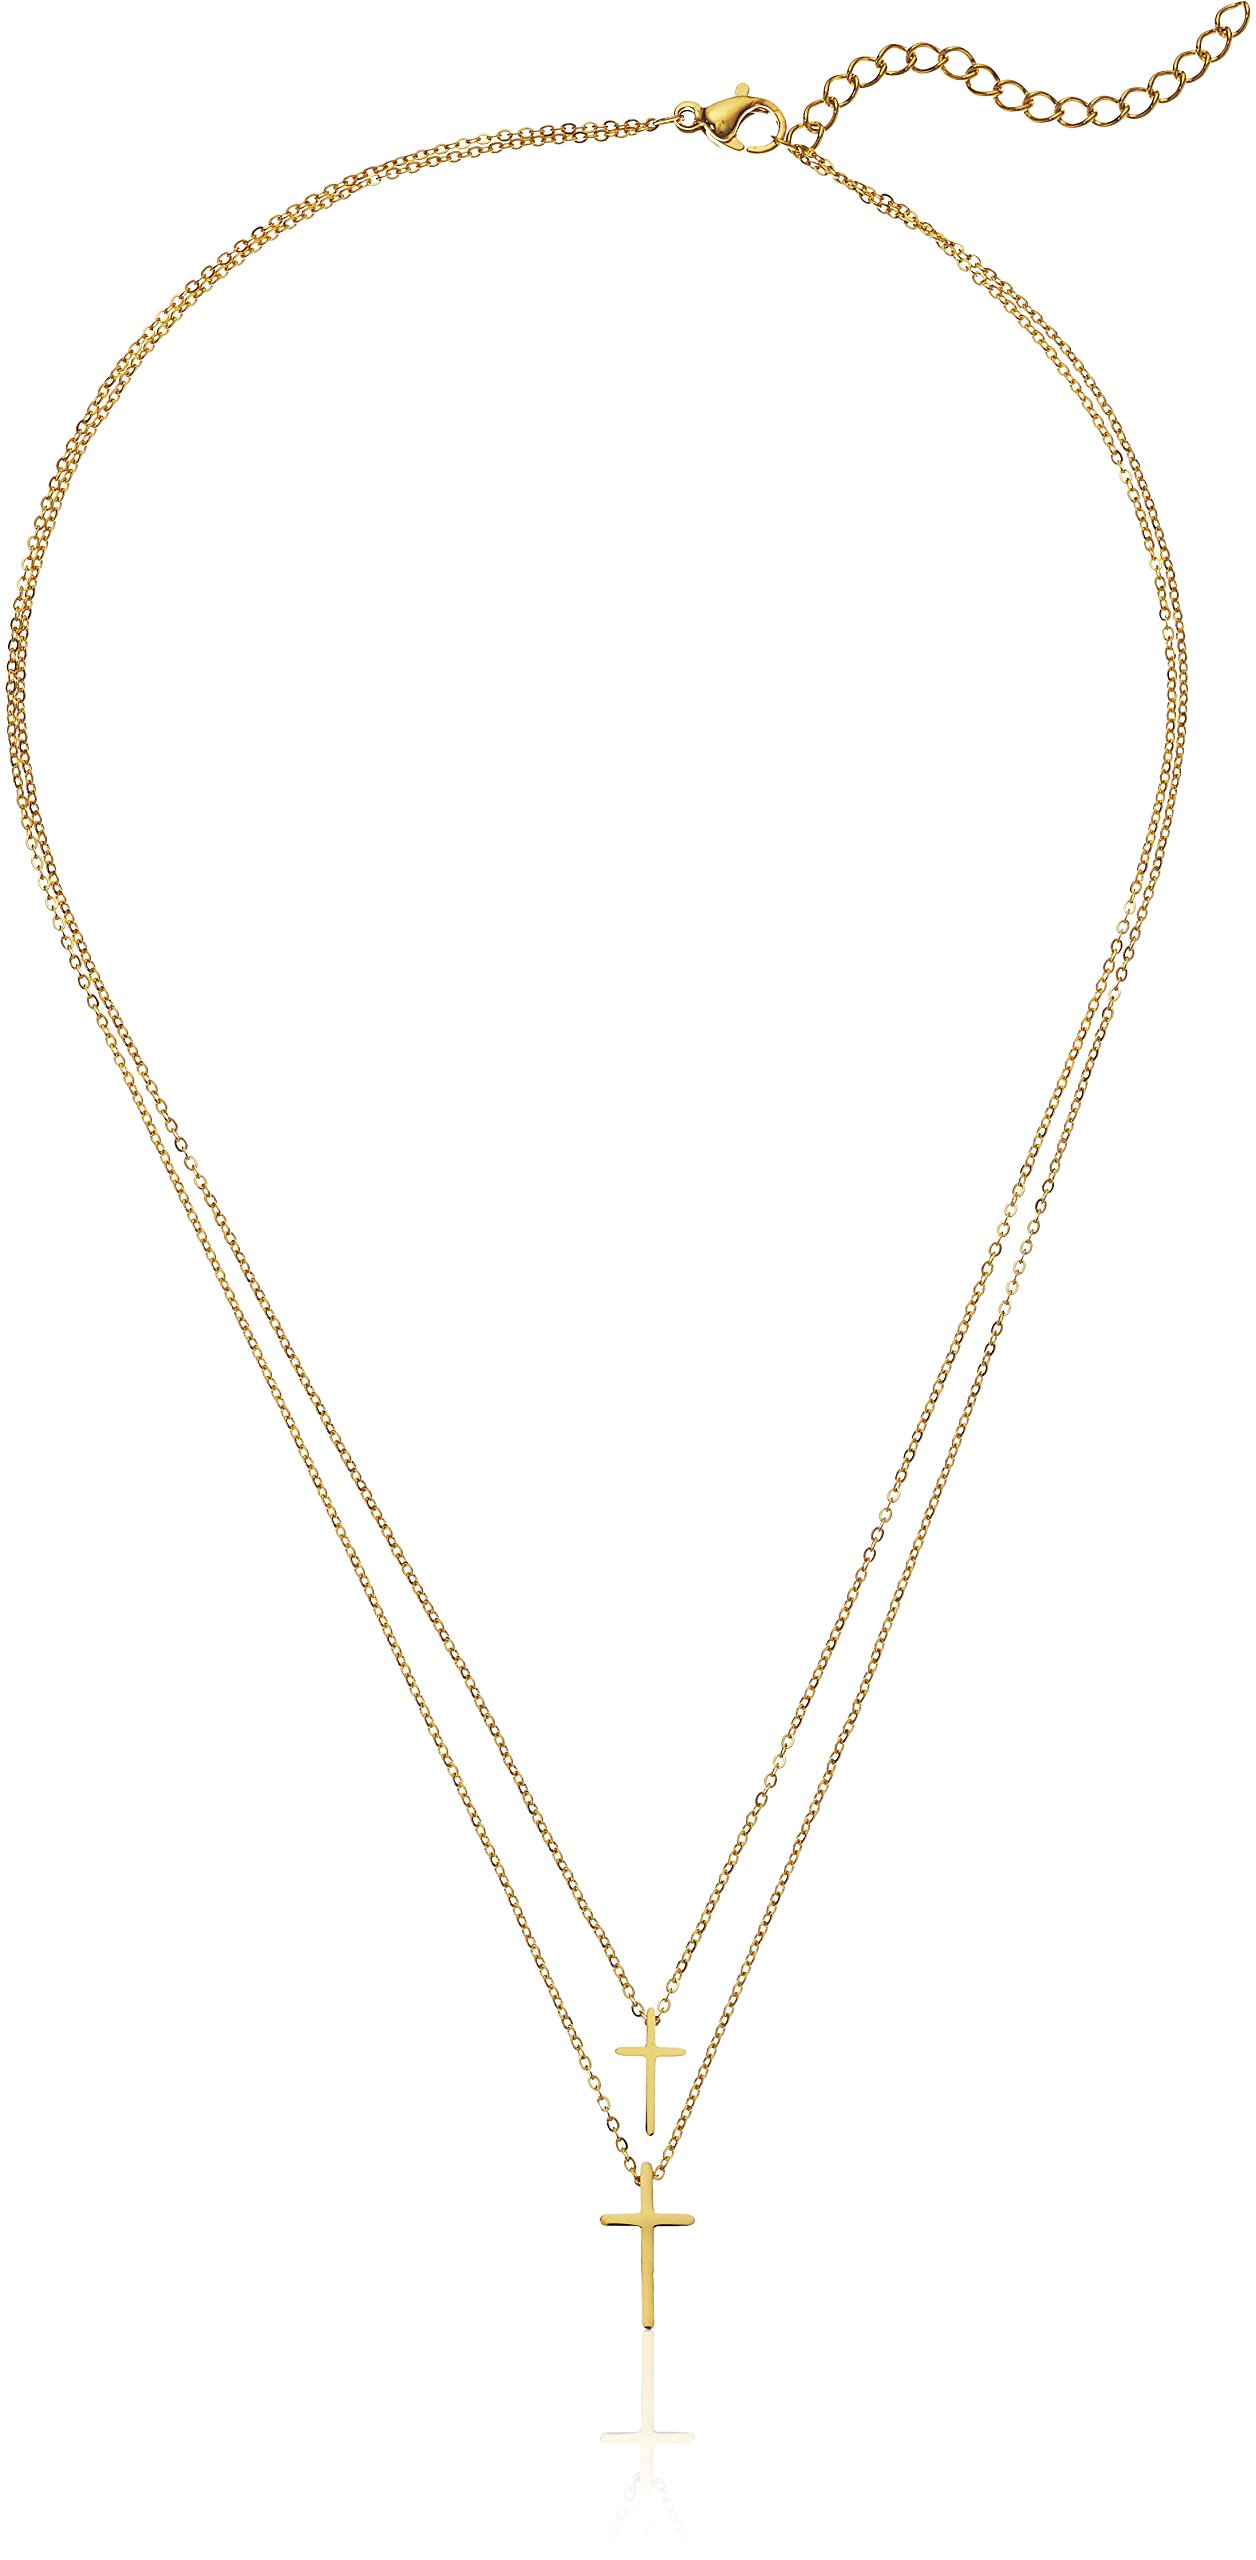 ELYA Jewelry Womens Polished Cross Stainless Steel Y Shaped Necklace, Gold, One Size